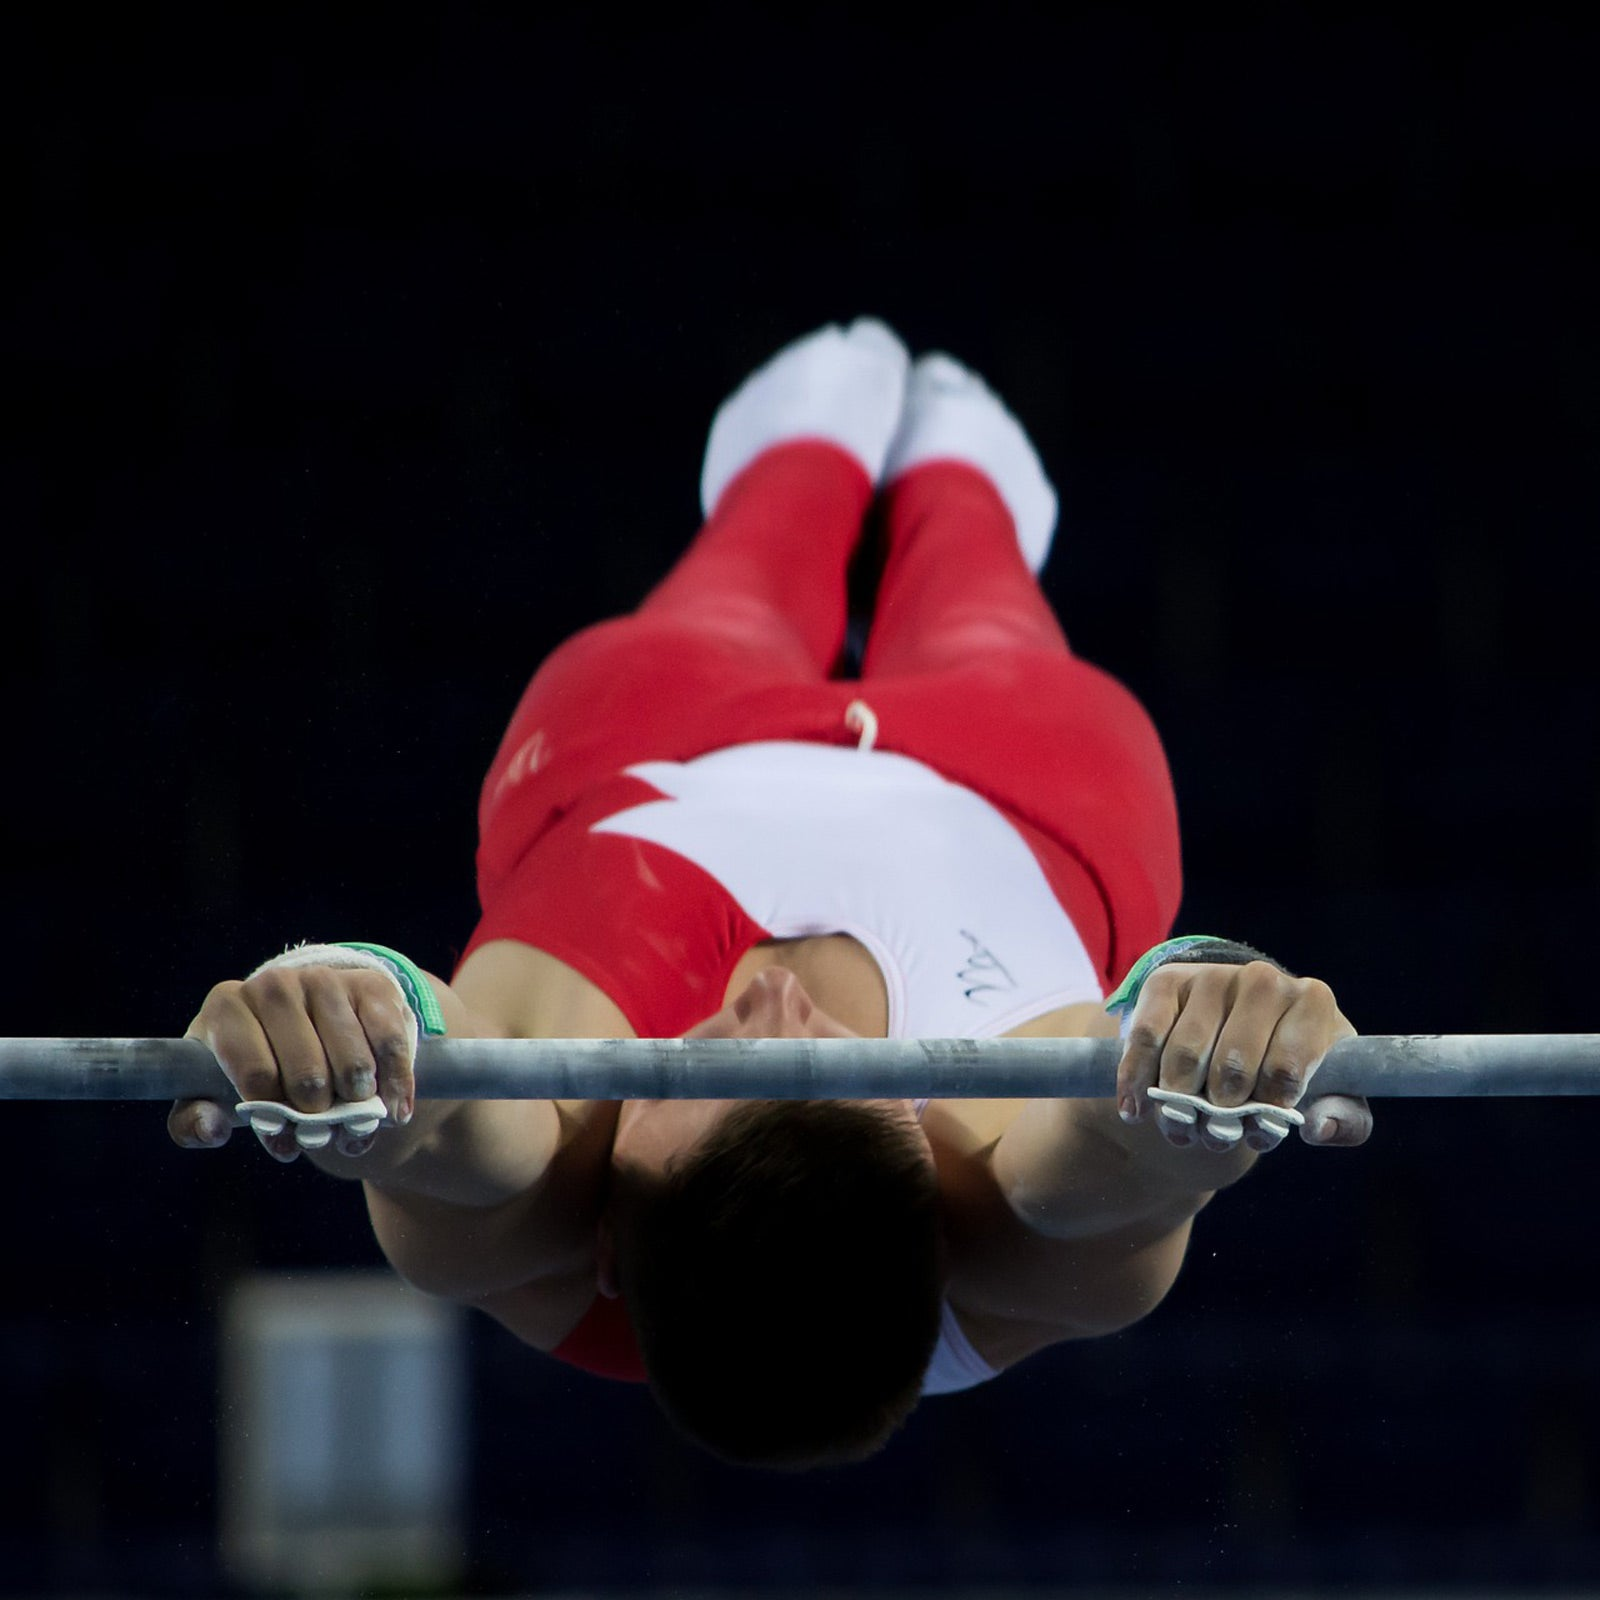 gymnast gripping bar